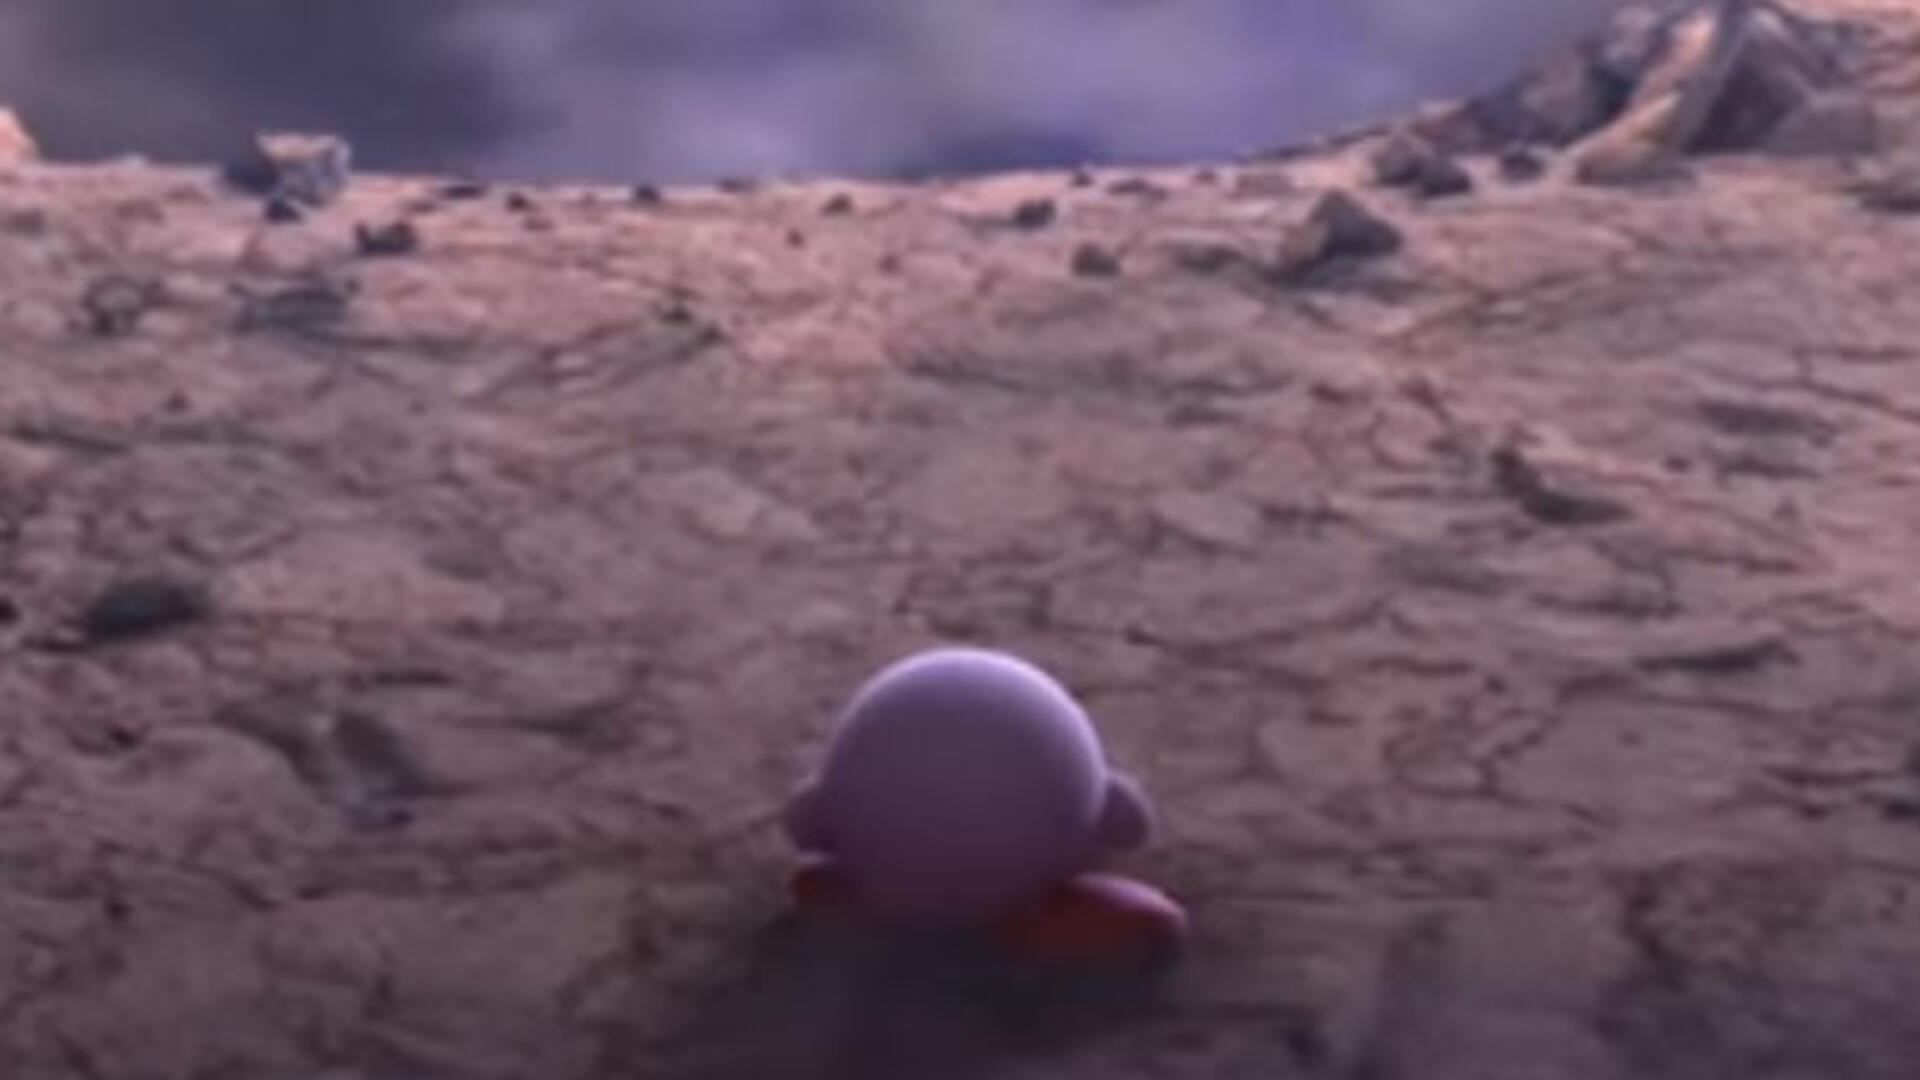 Super Smash Bros Ultimate's Spirits Mode Confirms Kirby is an Actual God